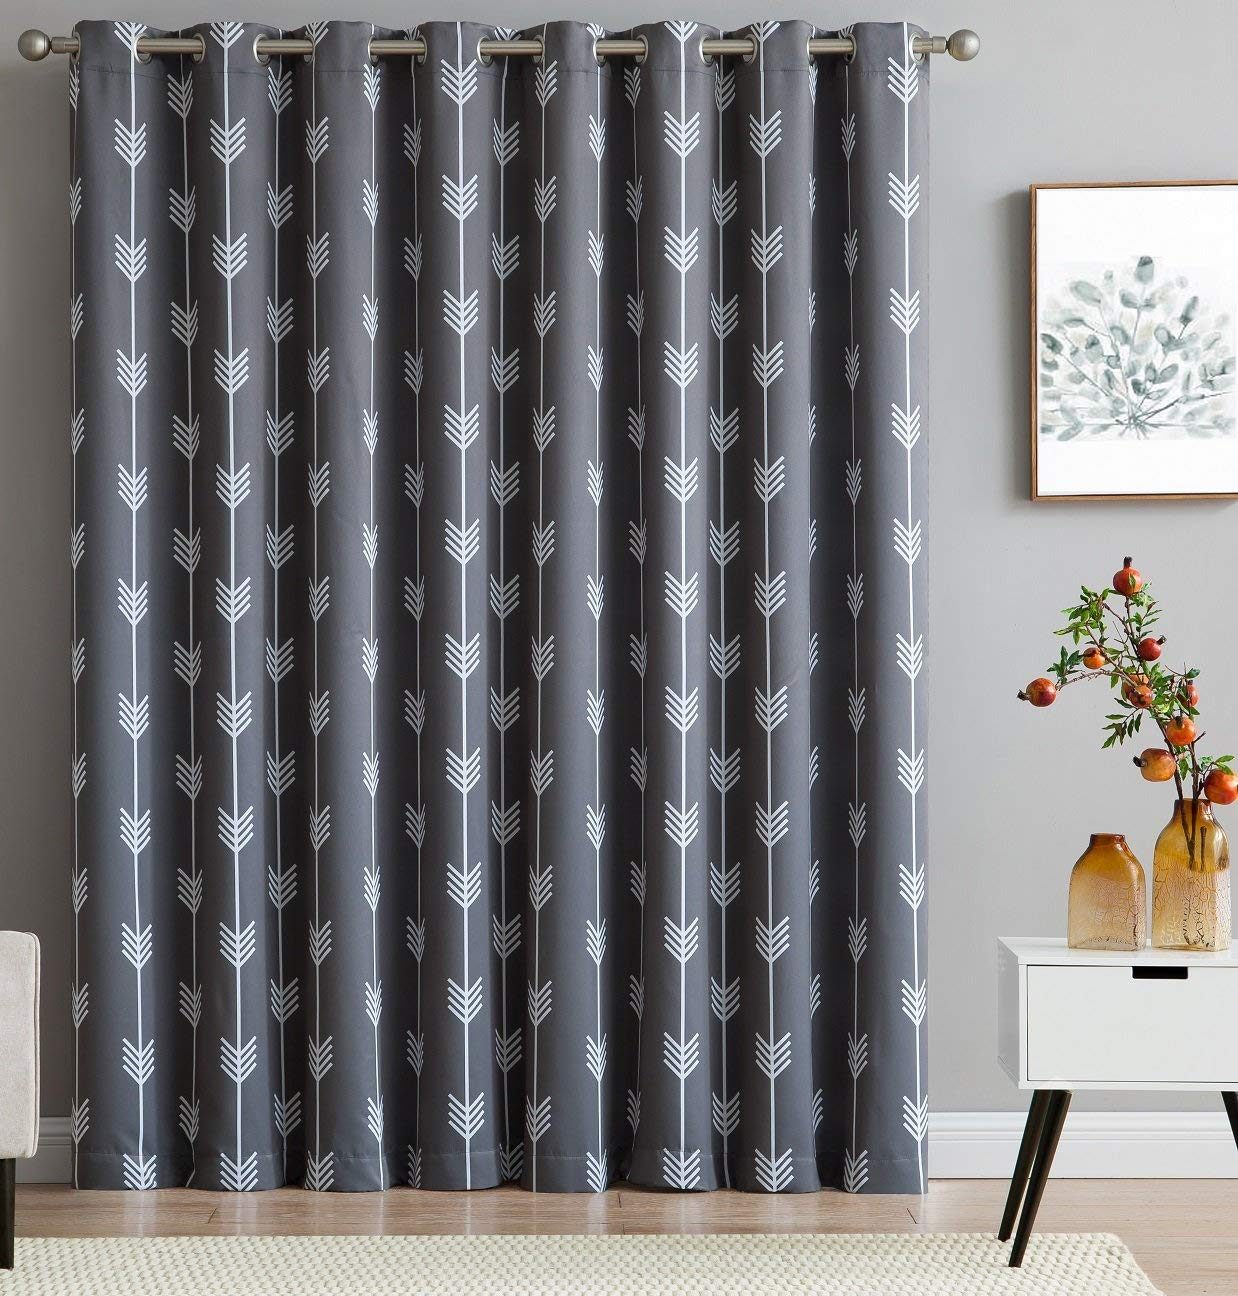 84 inch Long Set of 2 HLC.ME Arrow Printed Blackout Room Darkening Thermal Grommet Window Curtain Drape Panels for Bedroom Grey